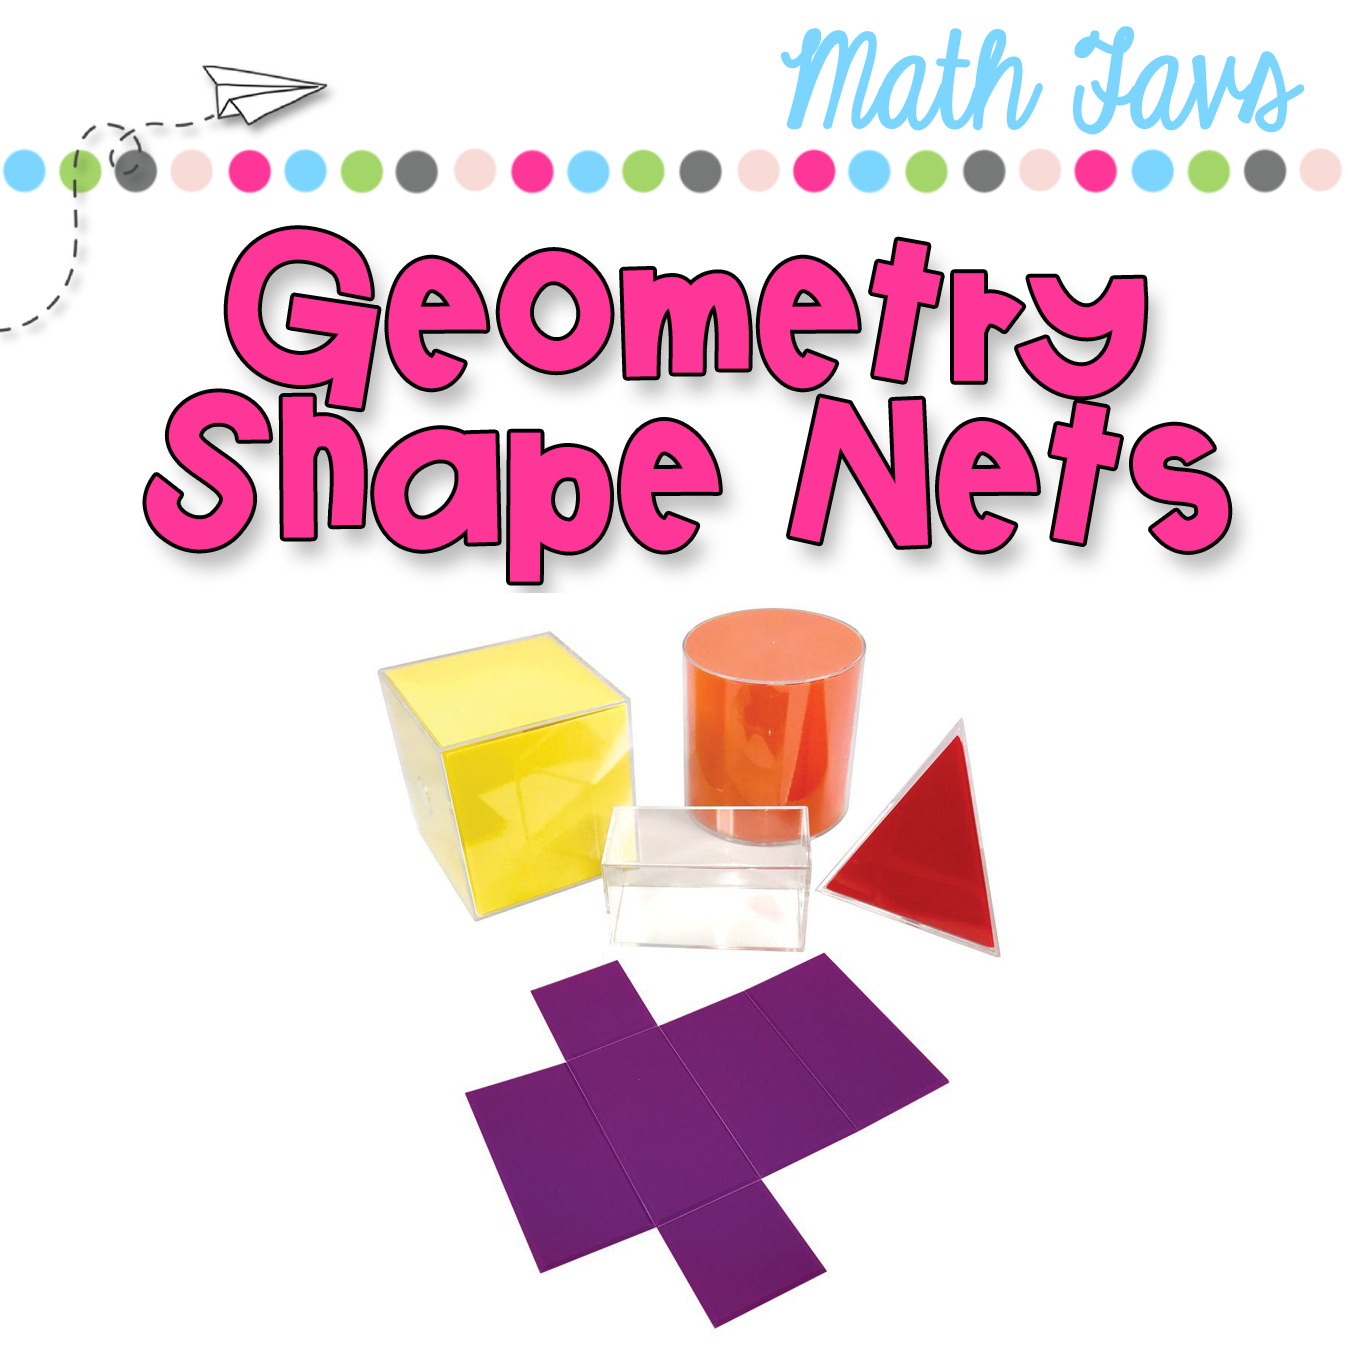 Geometry clipart math skill. Shape nets simply skilled